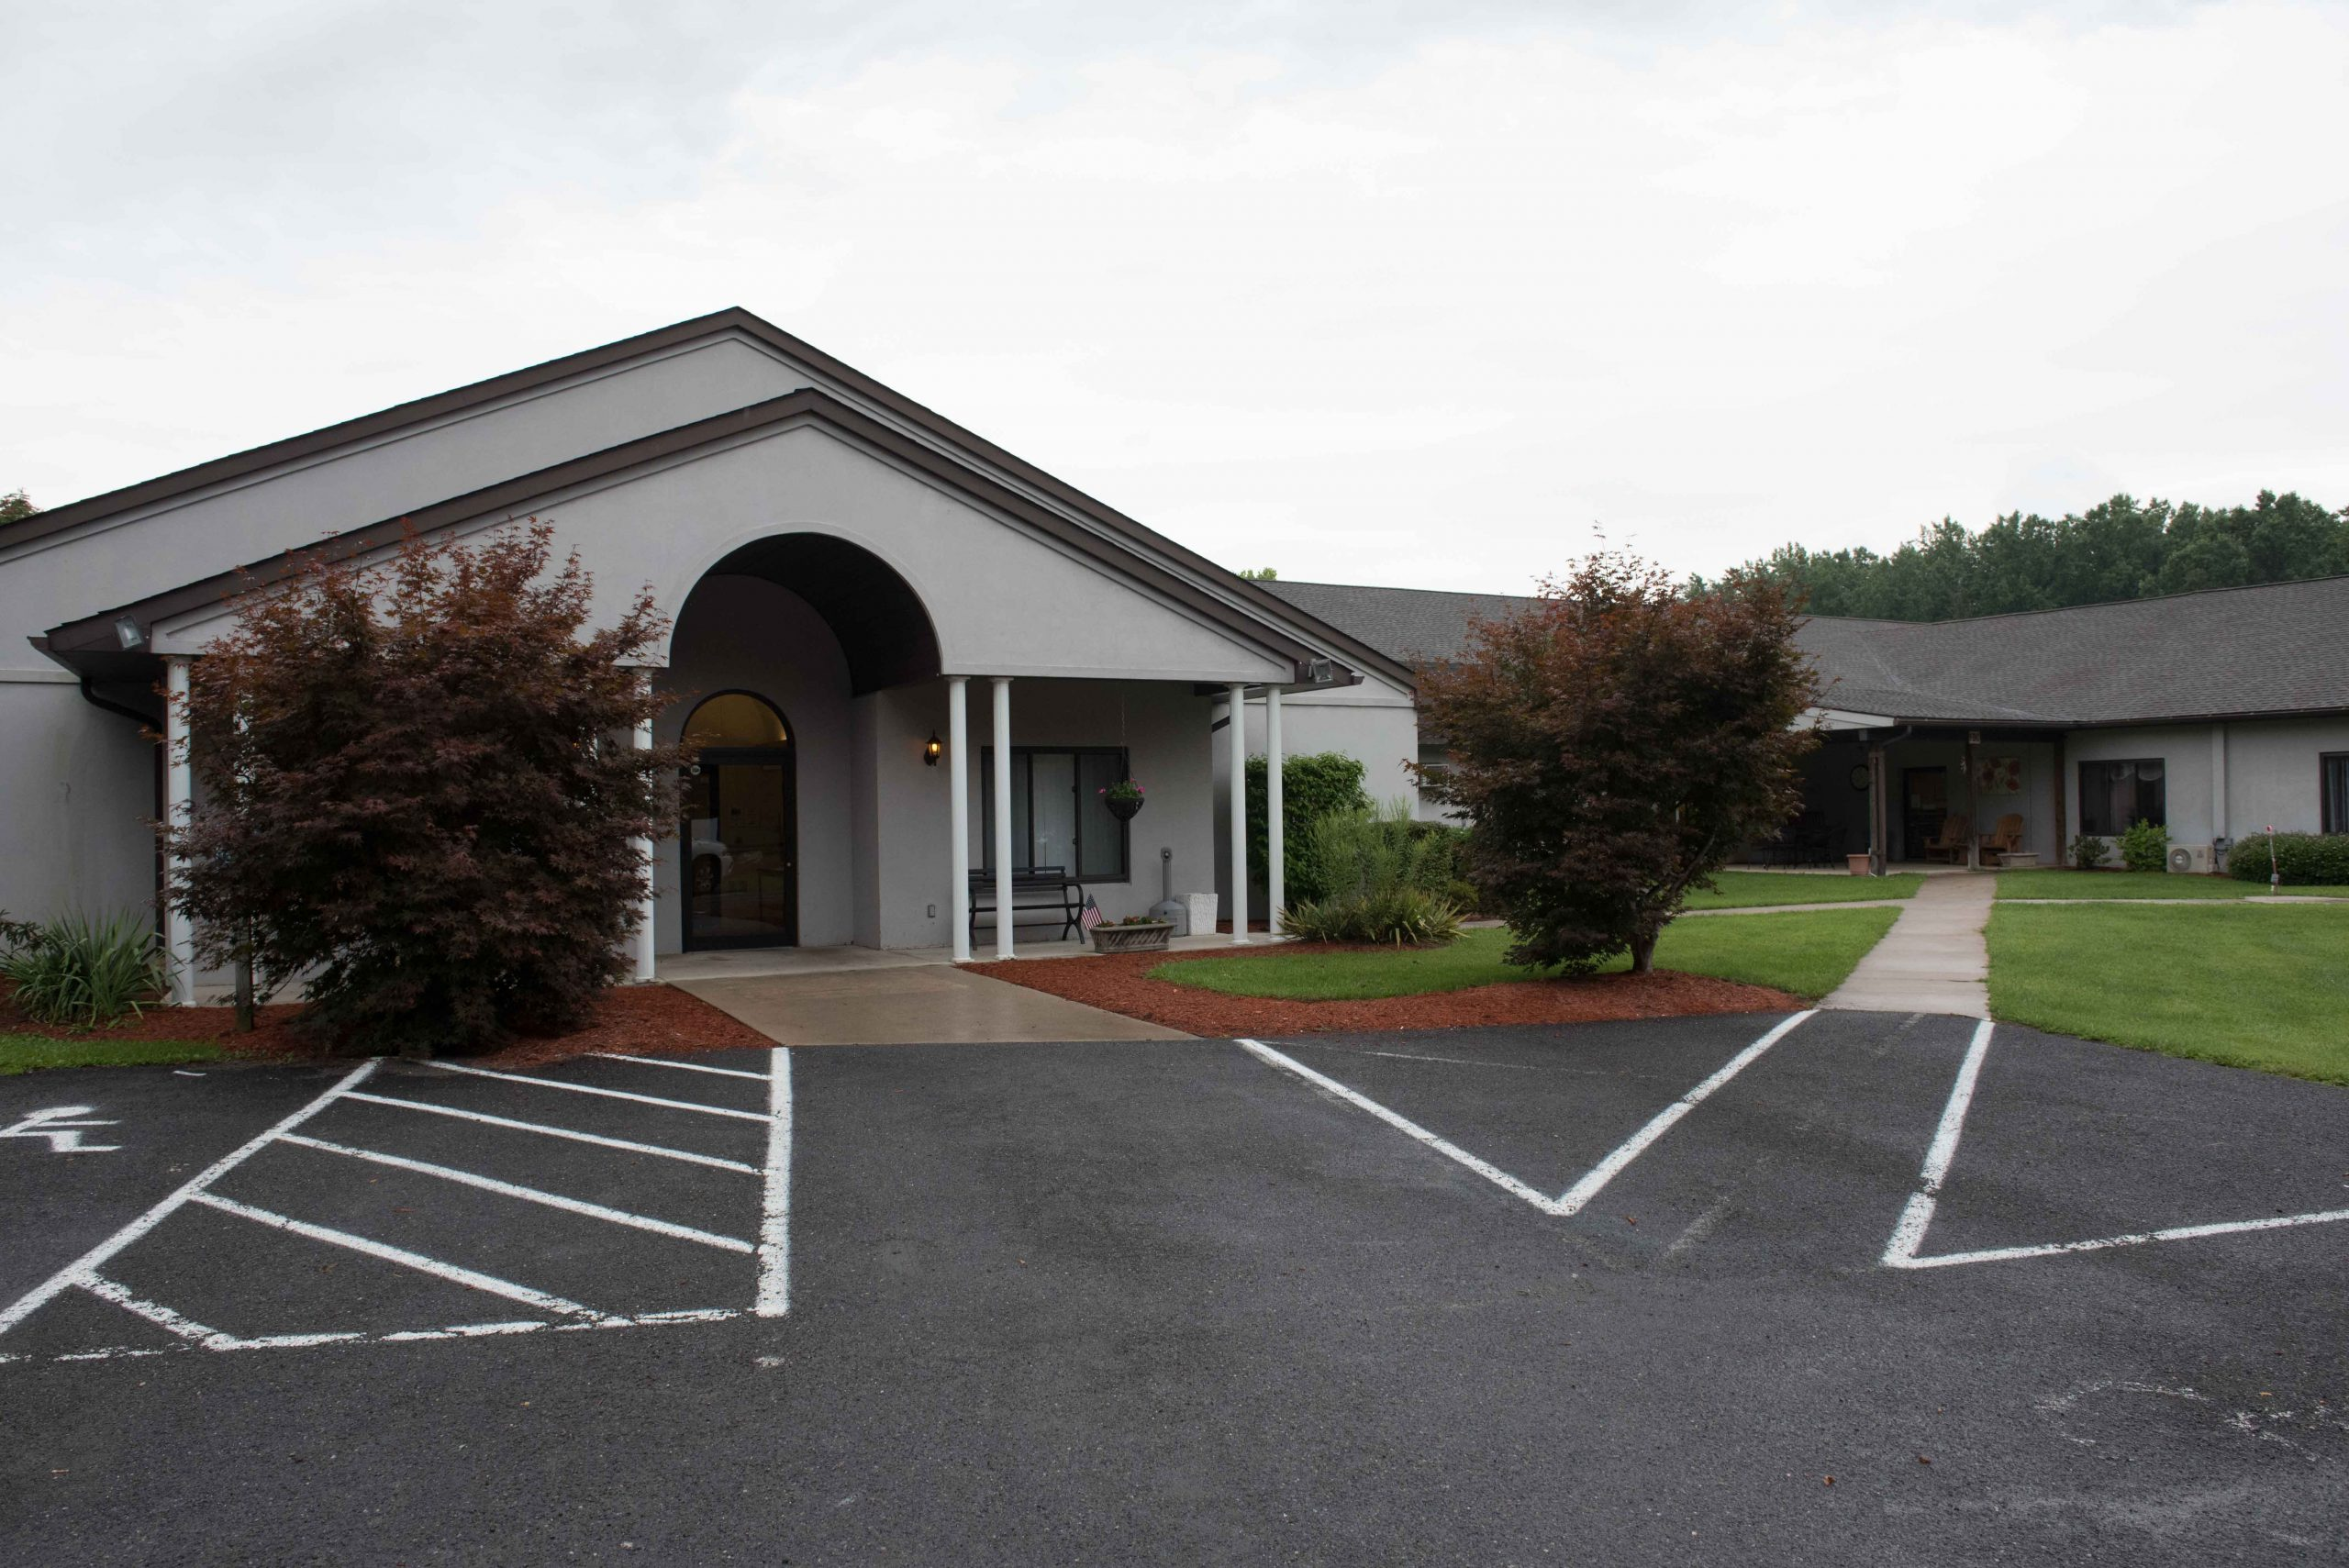 Exterior view of Stonerise Berkeley Springs building and entrance